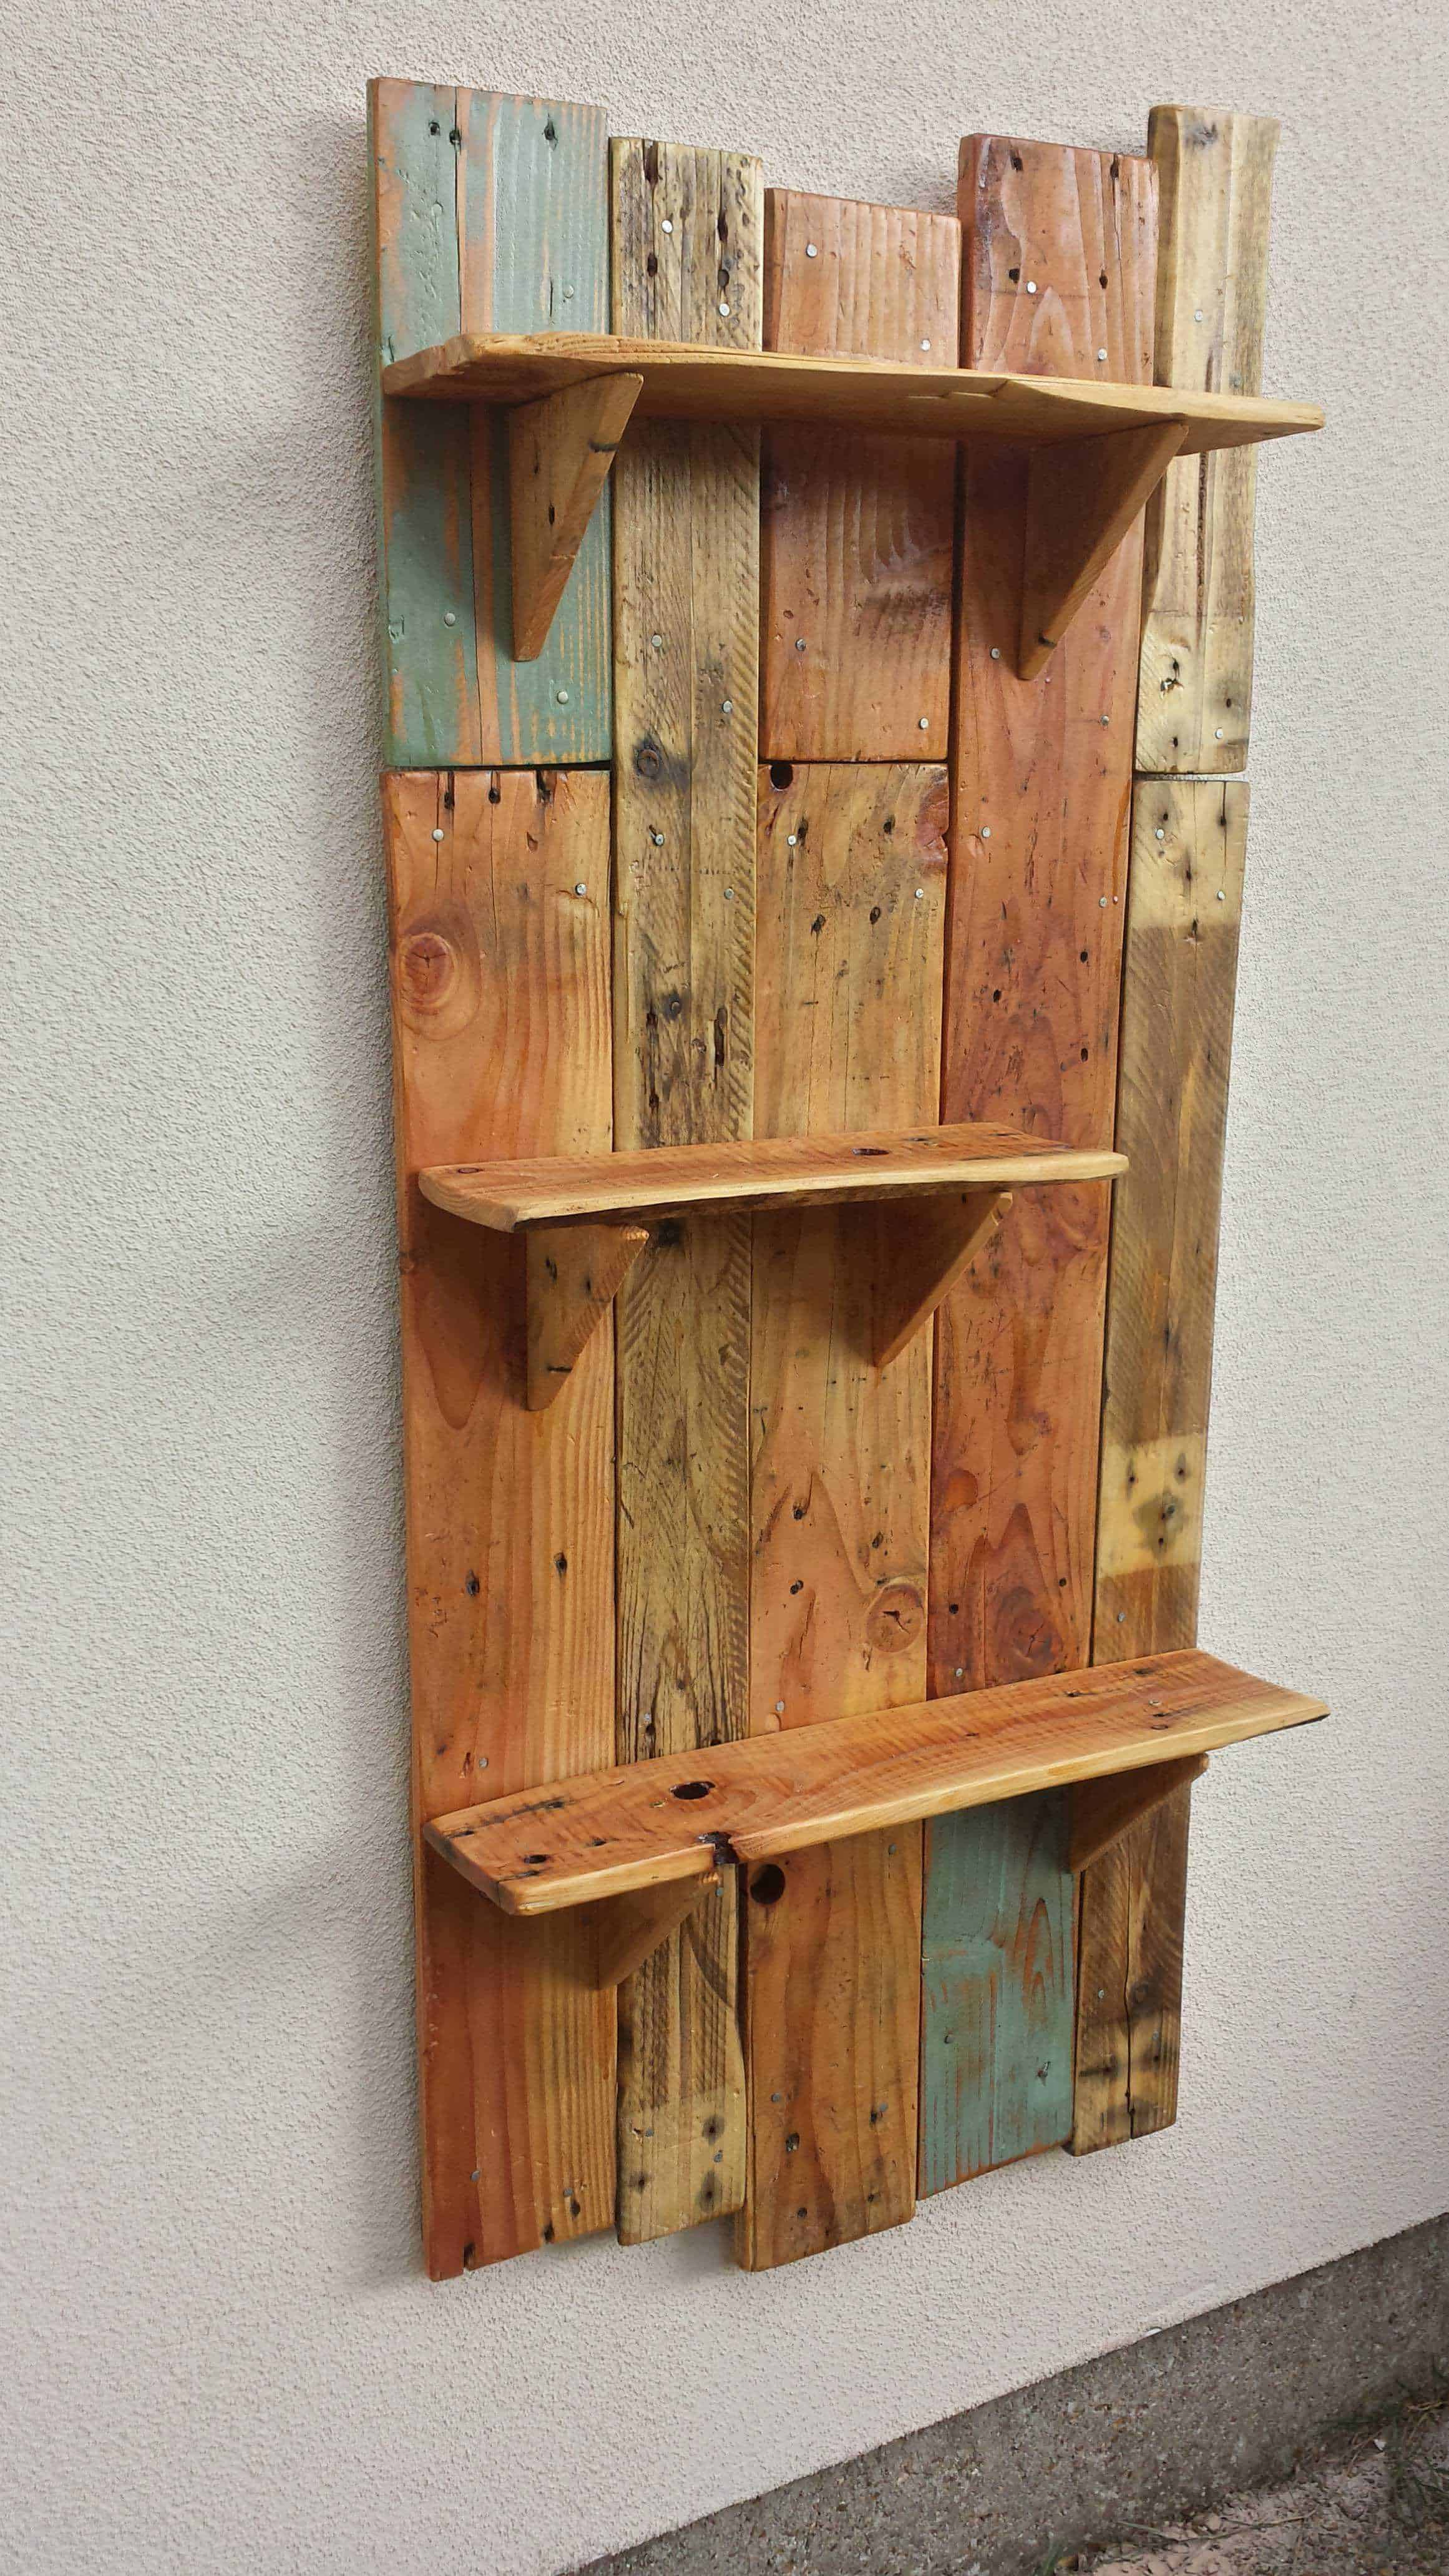 Rustic Pallet Hanging Shelves For The Garden 1001 Pallets